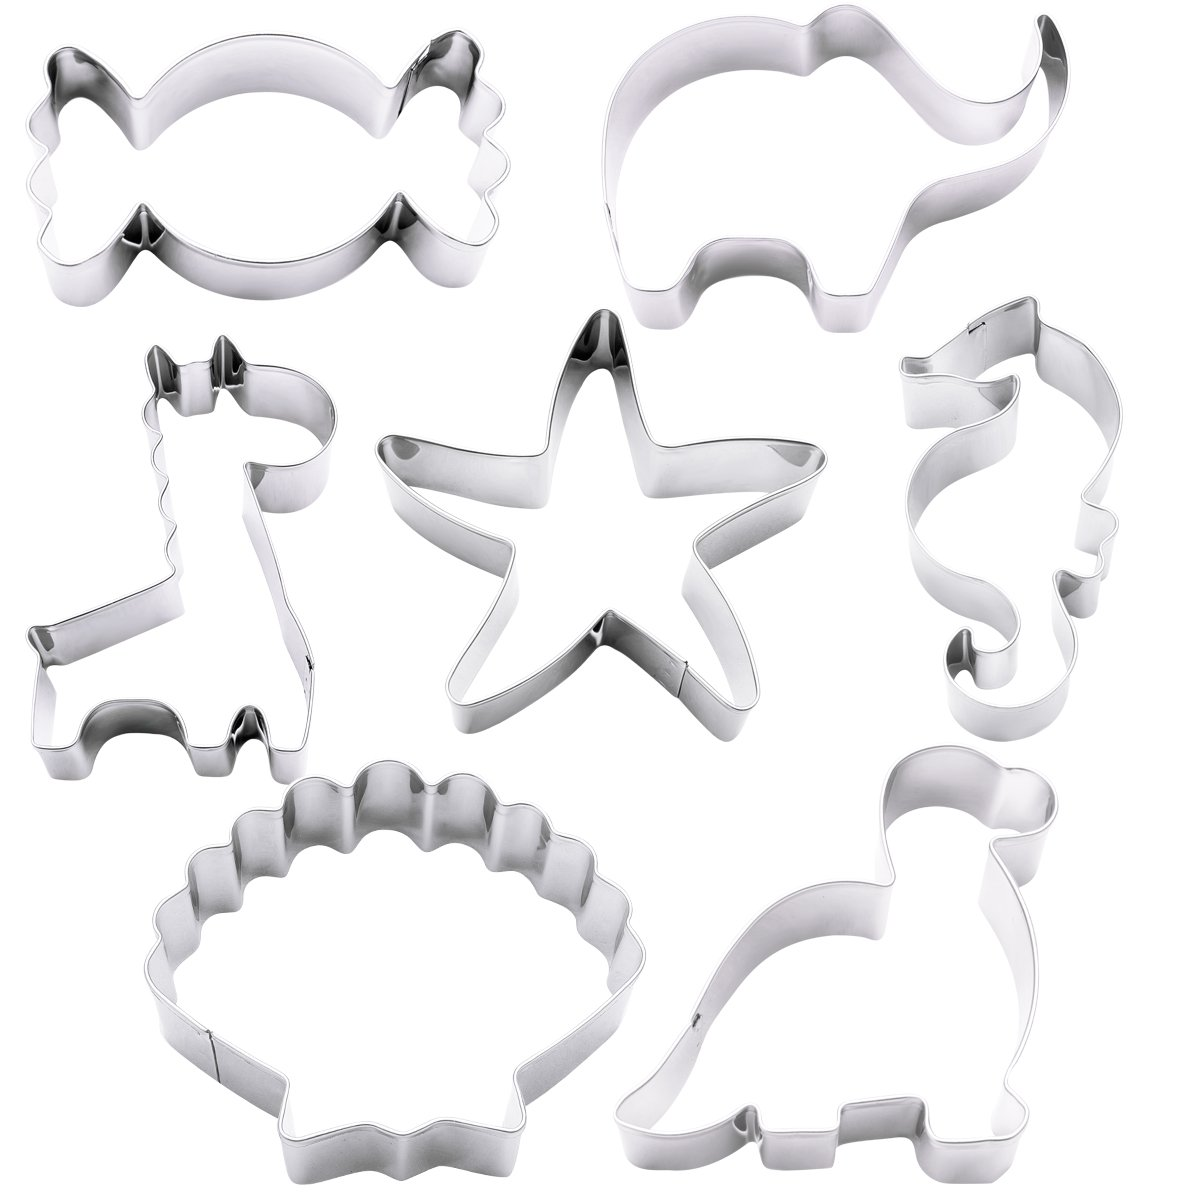 Cookie Cutter Mold Set, Amariver 7 Pack Stainless Steel Mini Animal Shape Metal Cookie Cutter, Fruit Cutter, Vegetable Cutter and Cake Cutter for Toddlers Baby Kids